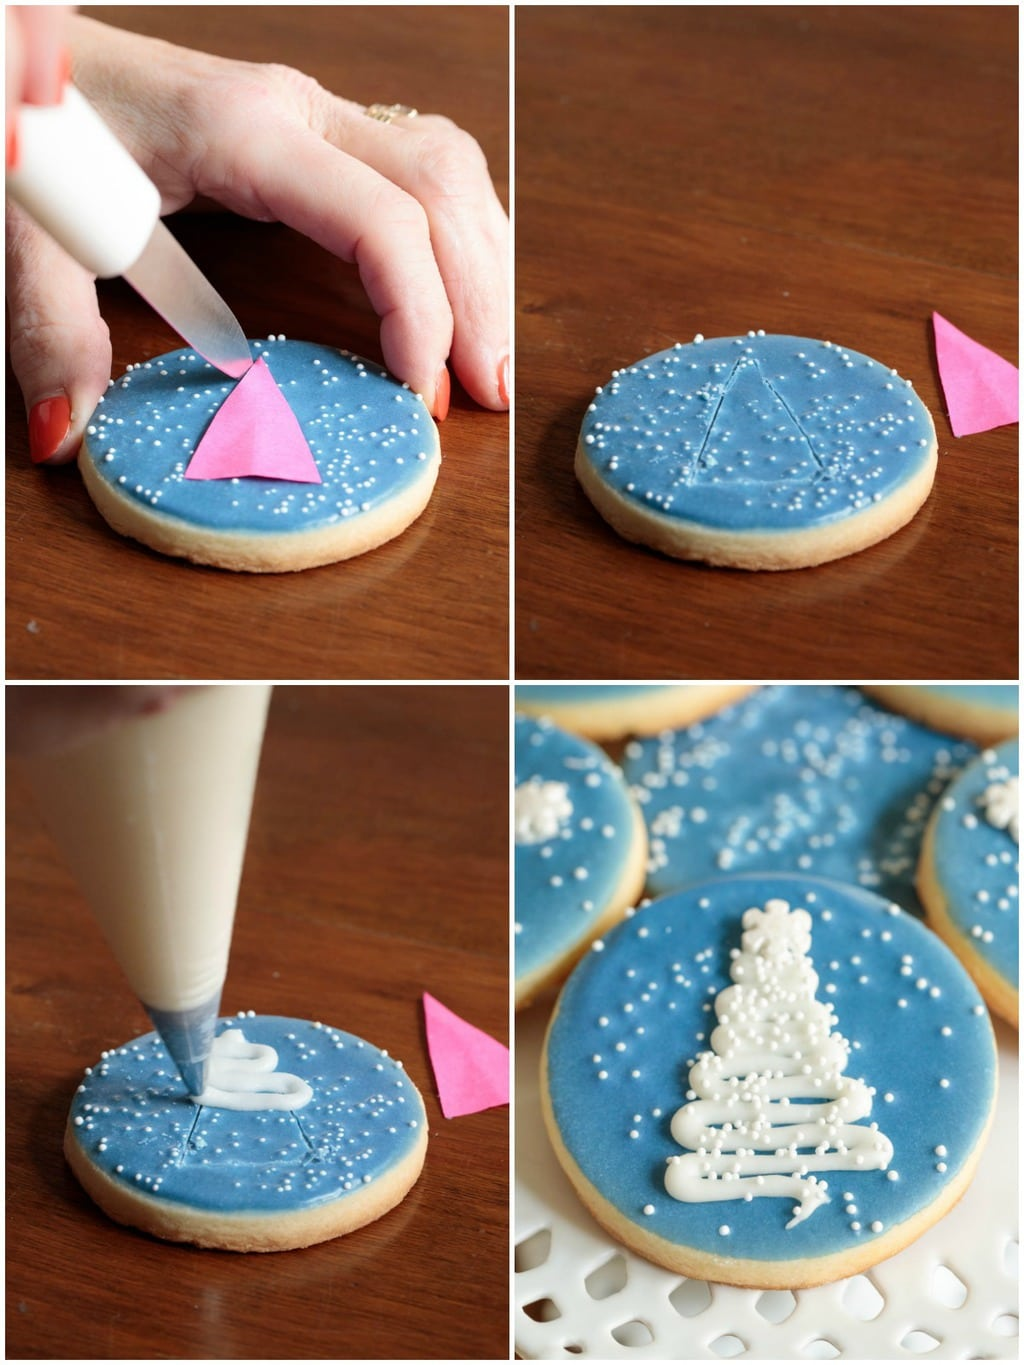 Photo collage of how to pipe consistent tree shapes for Easy Decorated Christmas Cookies.